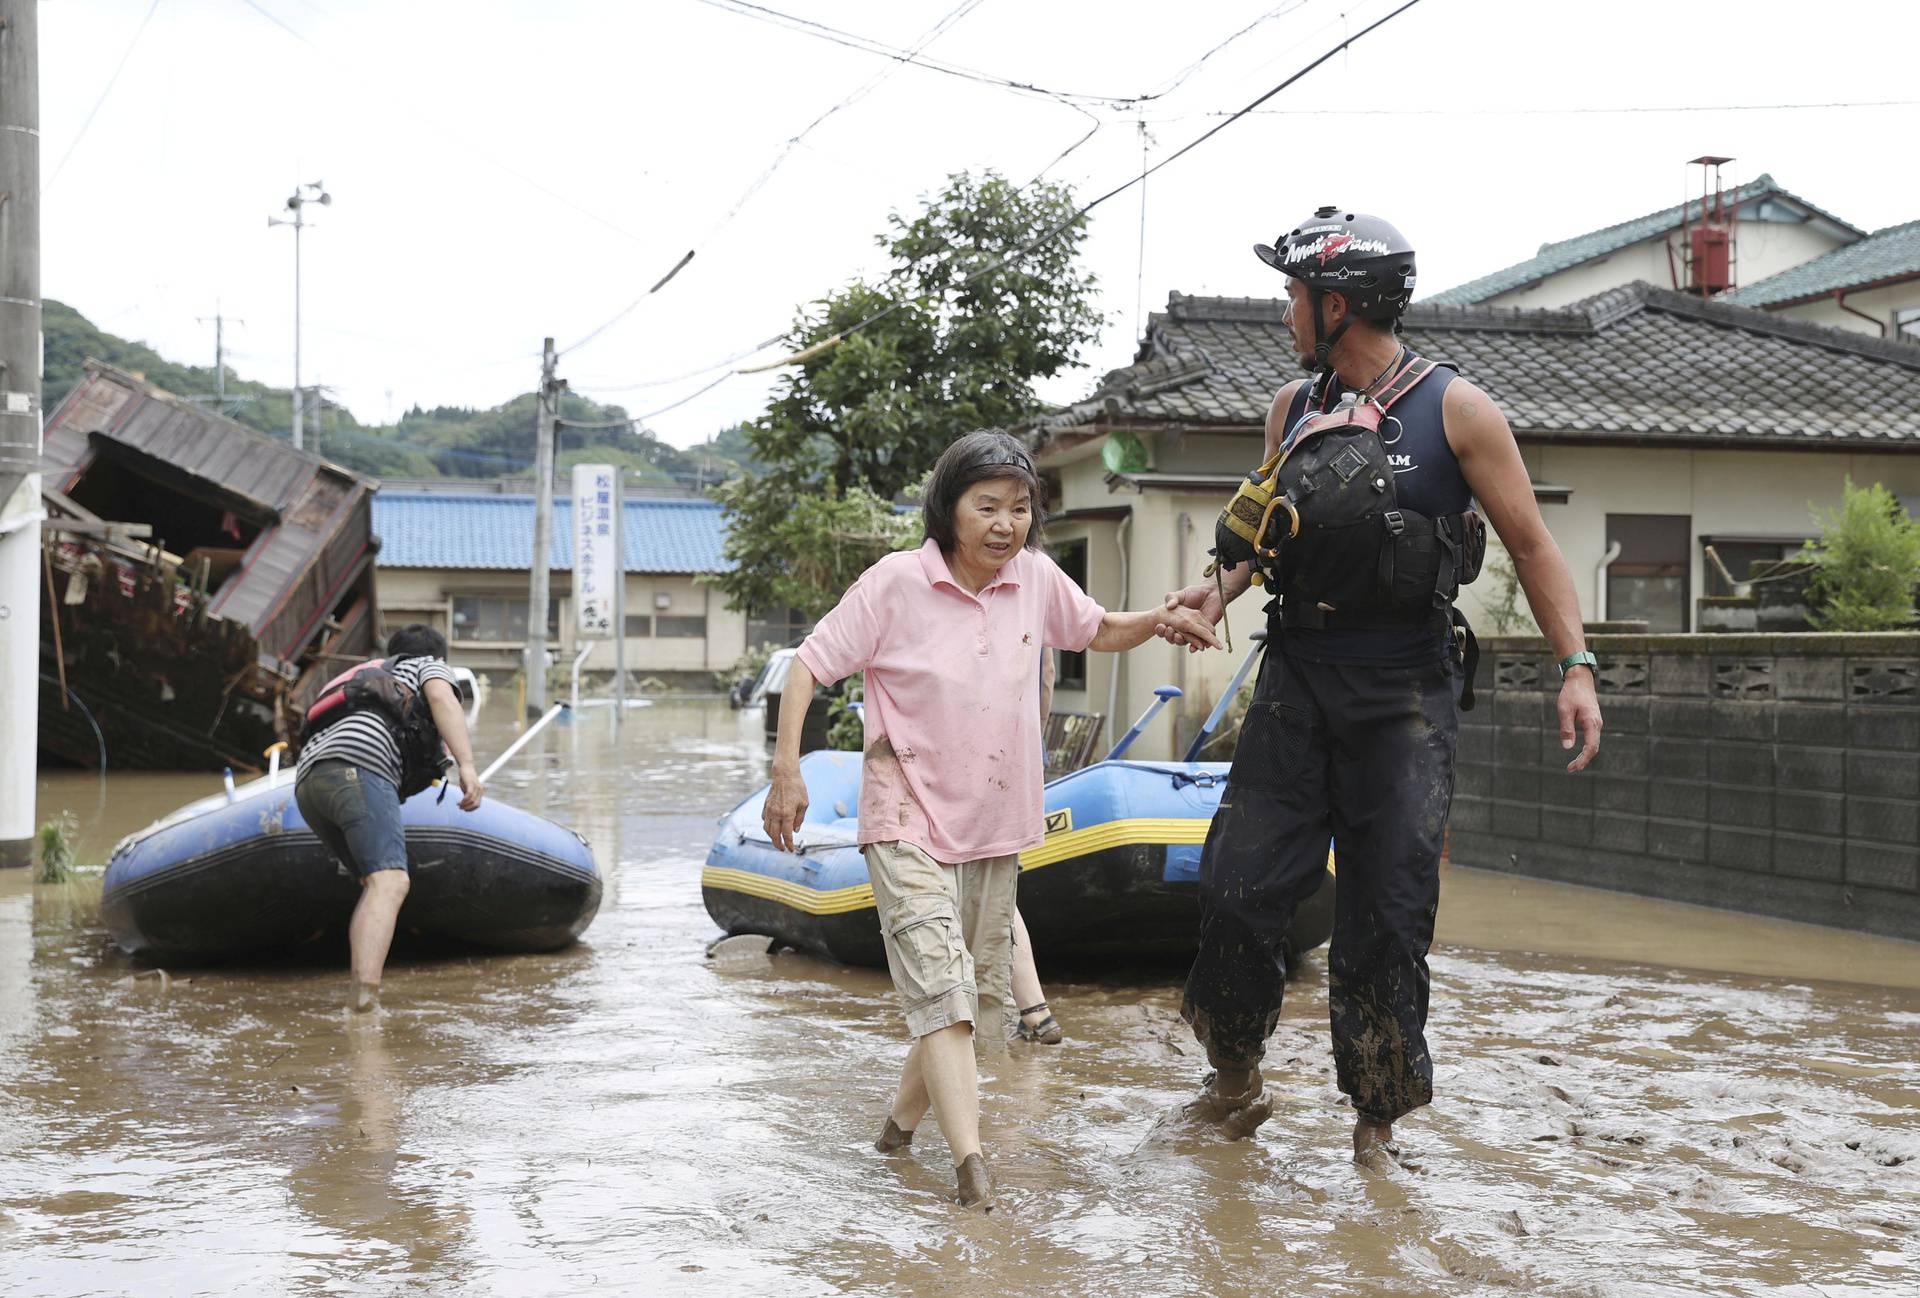 A rescue worker helps local residents at a flooded area caused by a heavy rain along Kuma River in Hitoyoshi, Japan